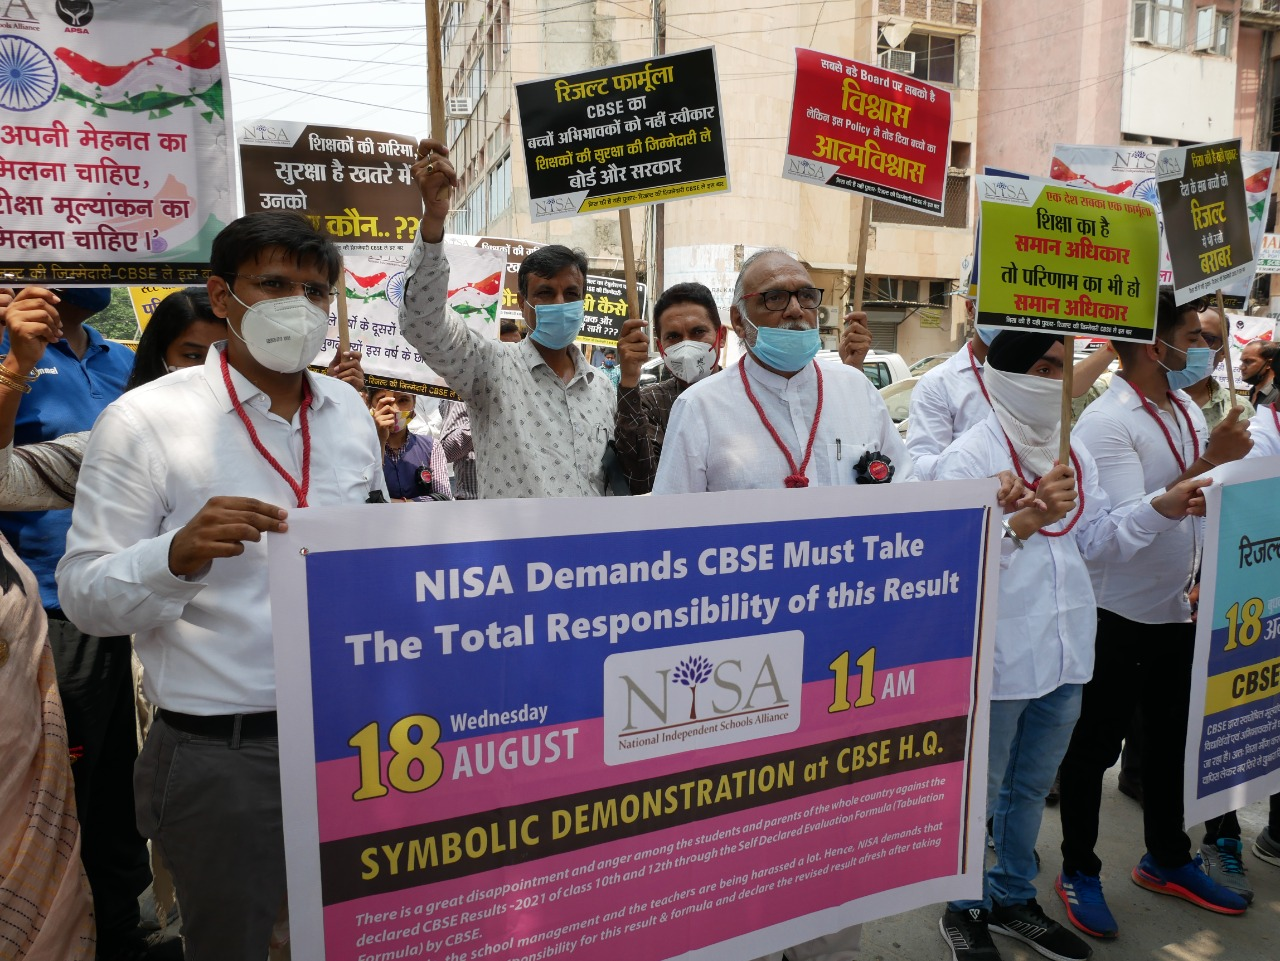 NISA Demands CBSE Must Take the Total Responsibility of the Result